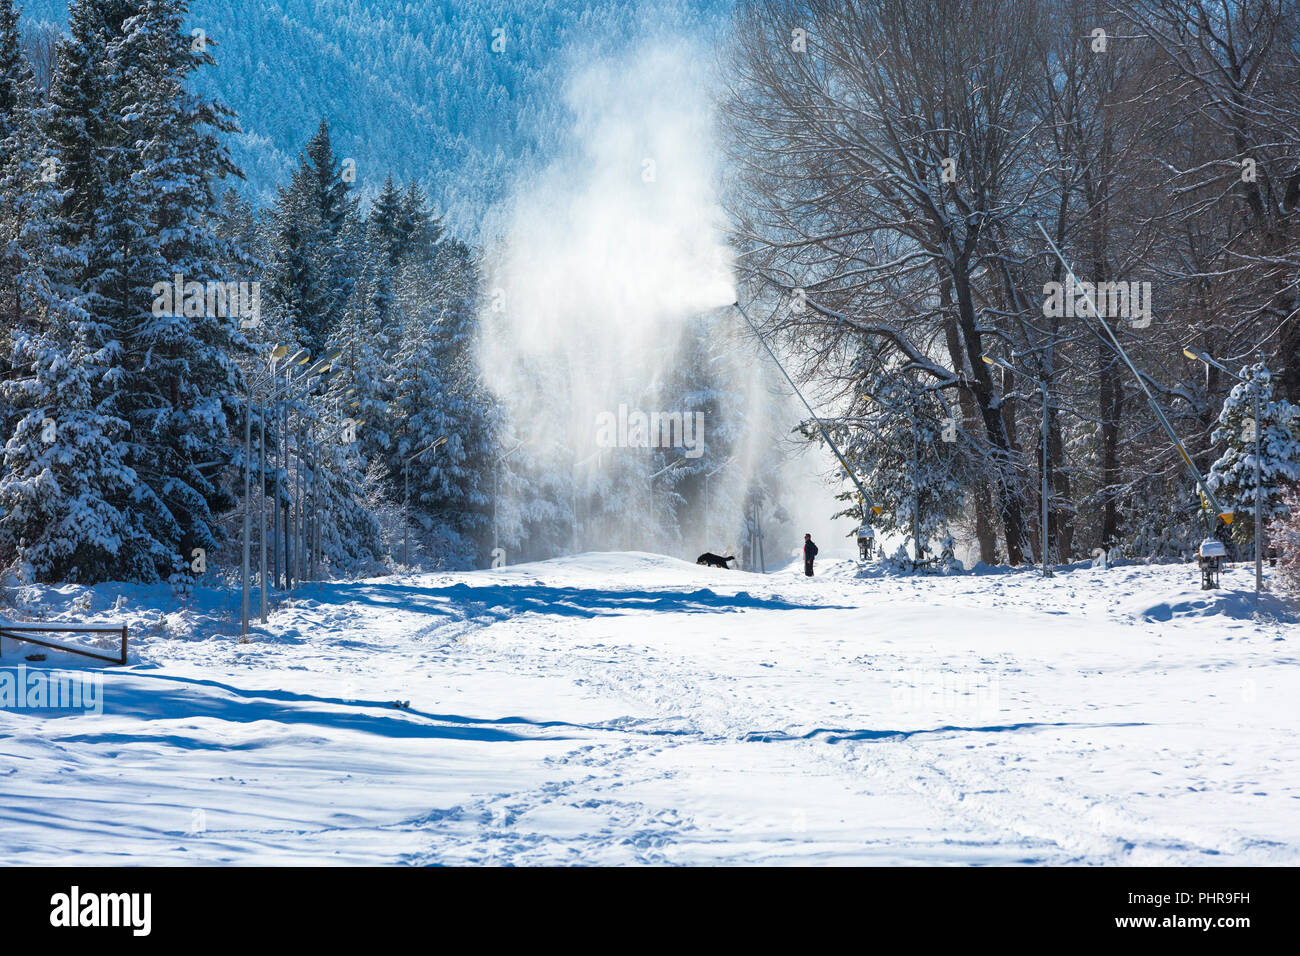 Winter ski resort landscape and snow canons in Bansko, Bulgaria - Stock Image